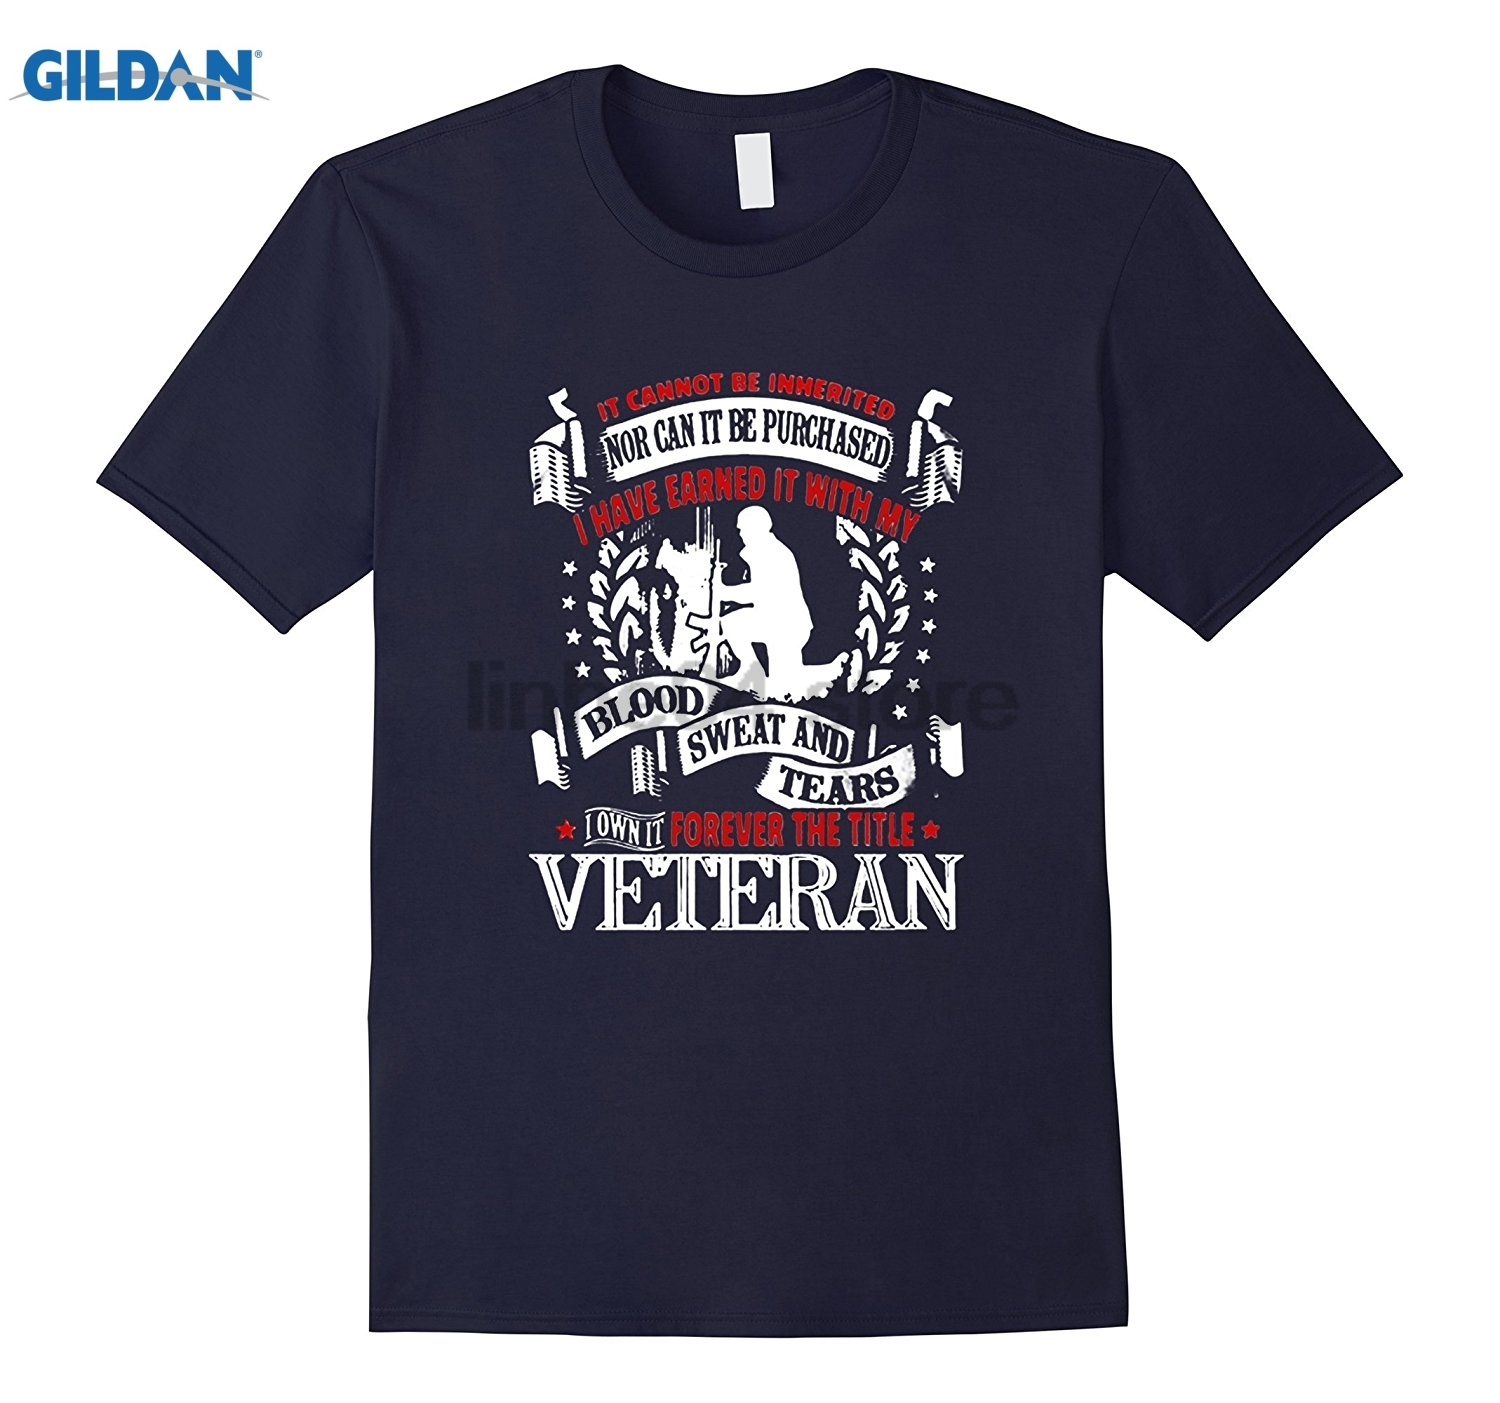 GILDAN u.s Woman Veteran Tshirt dress T-shirt Mothers Day Ms. T-shirt